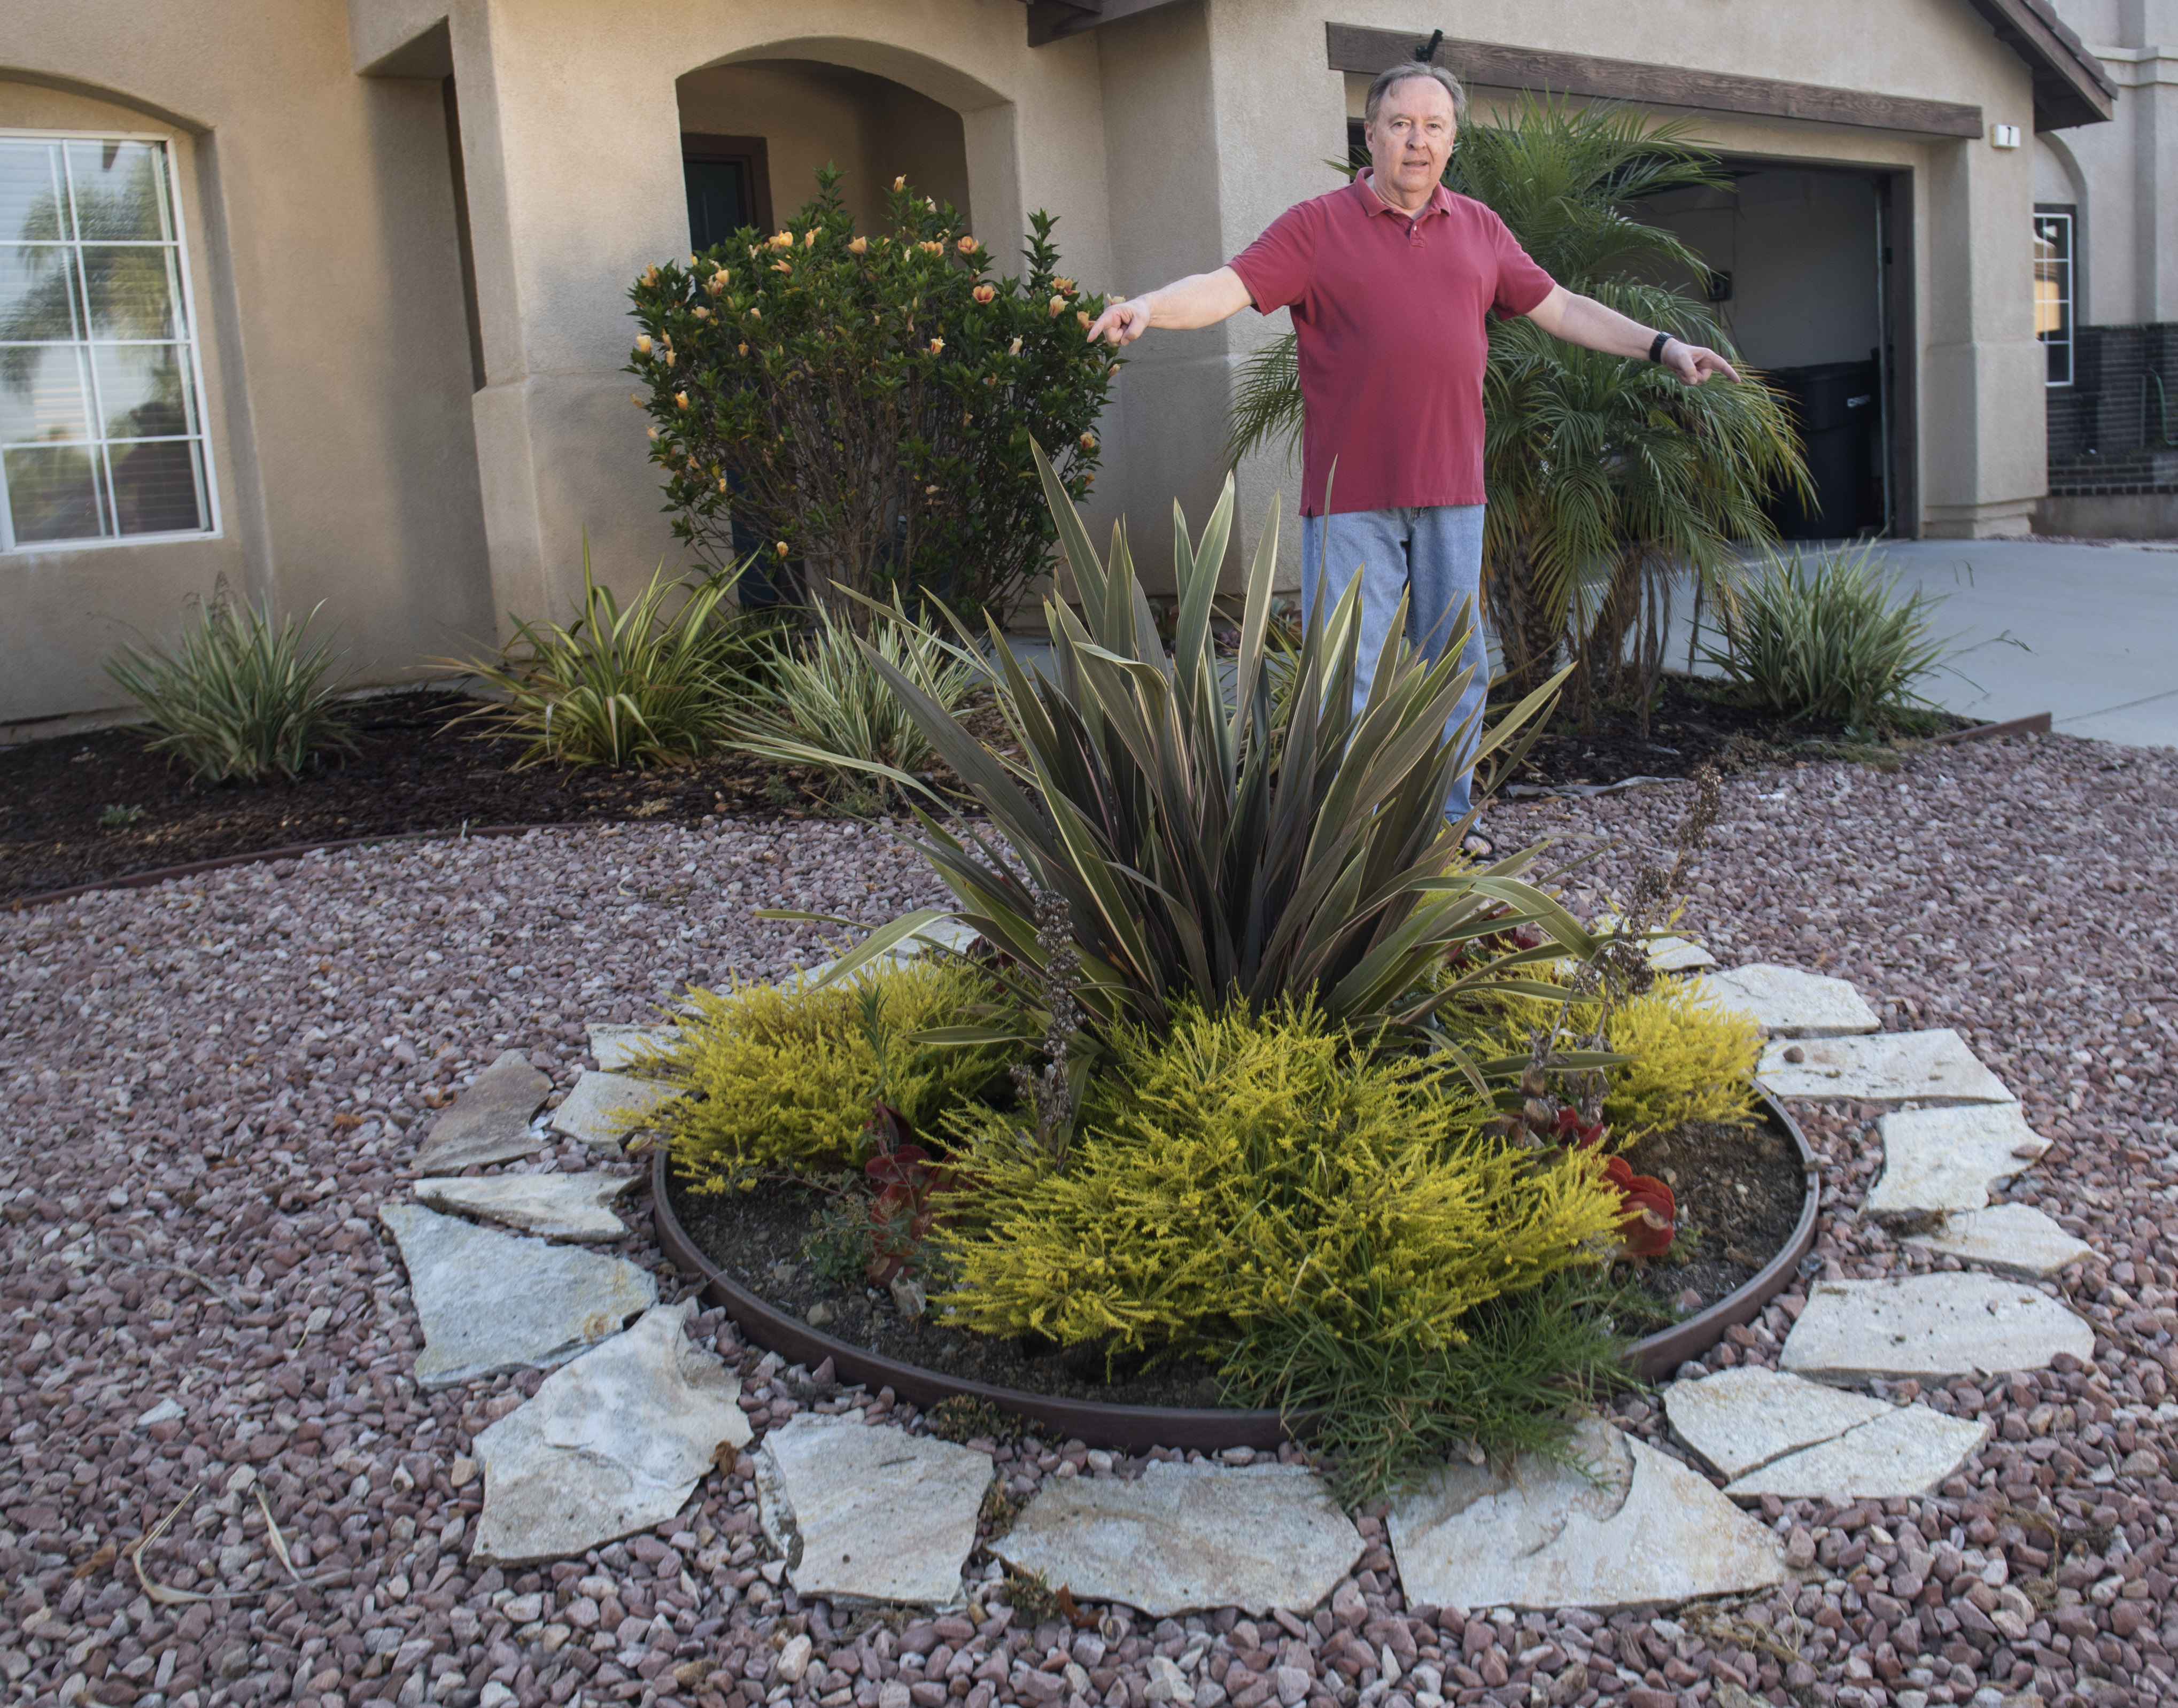 A Rancho Santa Margarita Resident Installed A Drought-Tolerant Lawn, And  Now He Could Face Hoa Fines – Orange County Register